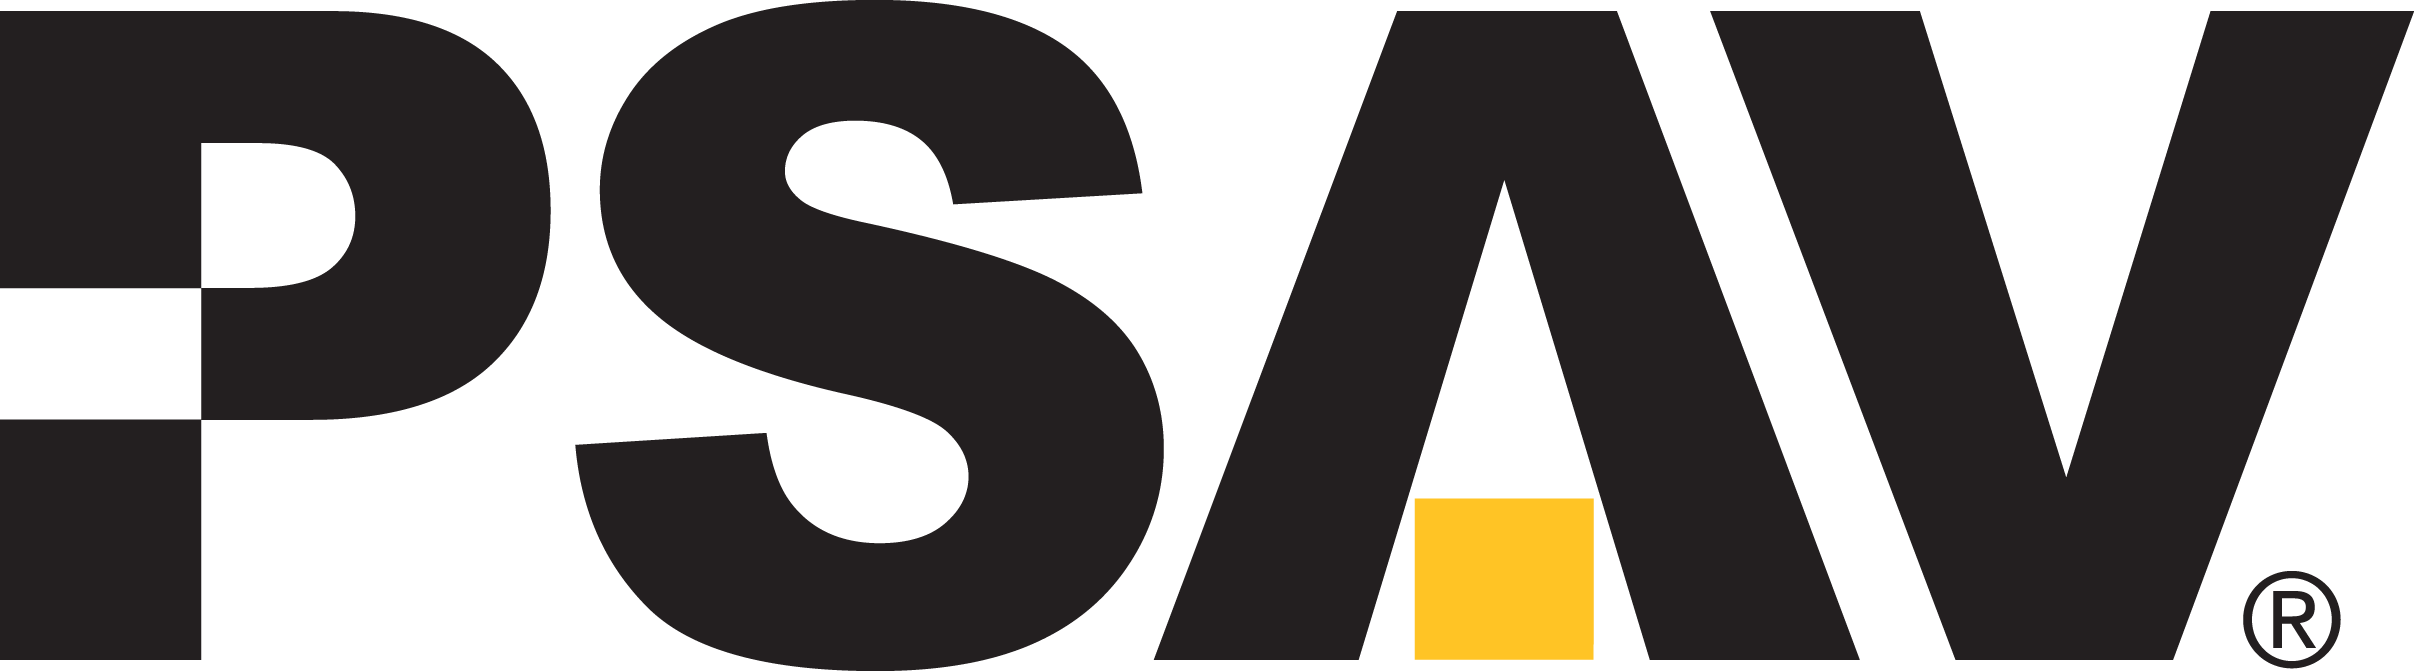 PSAV_RLogo_Color